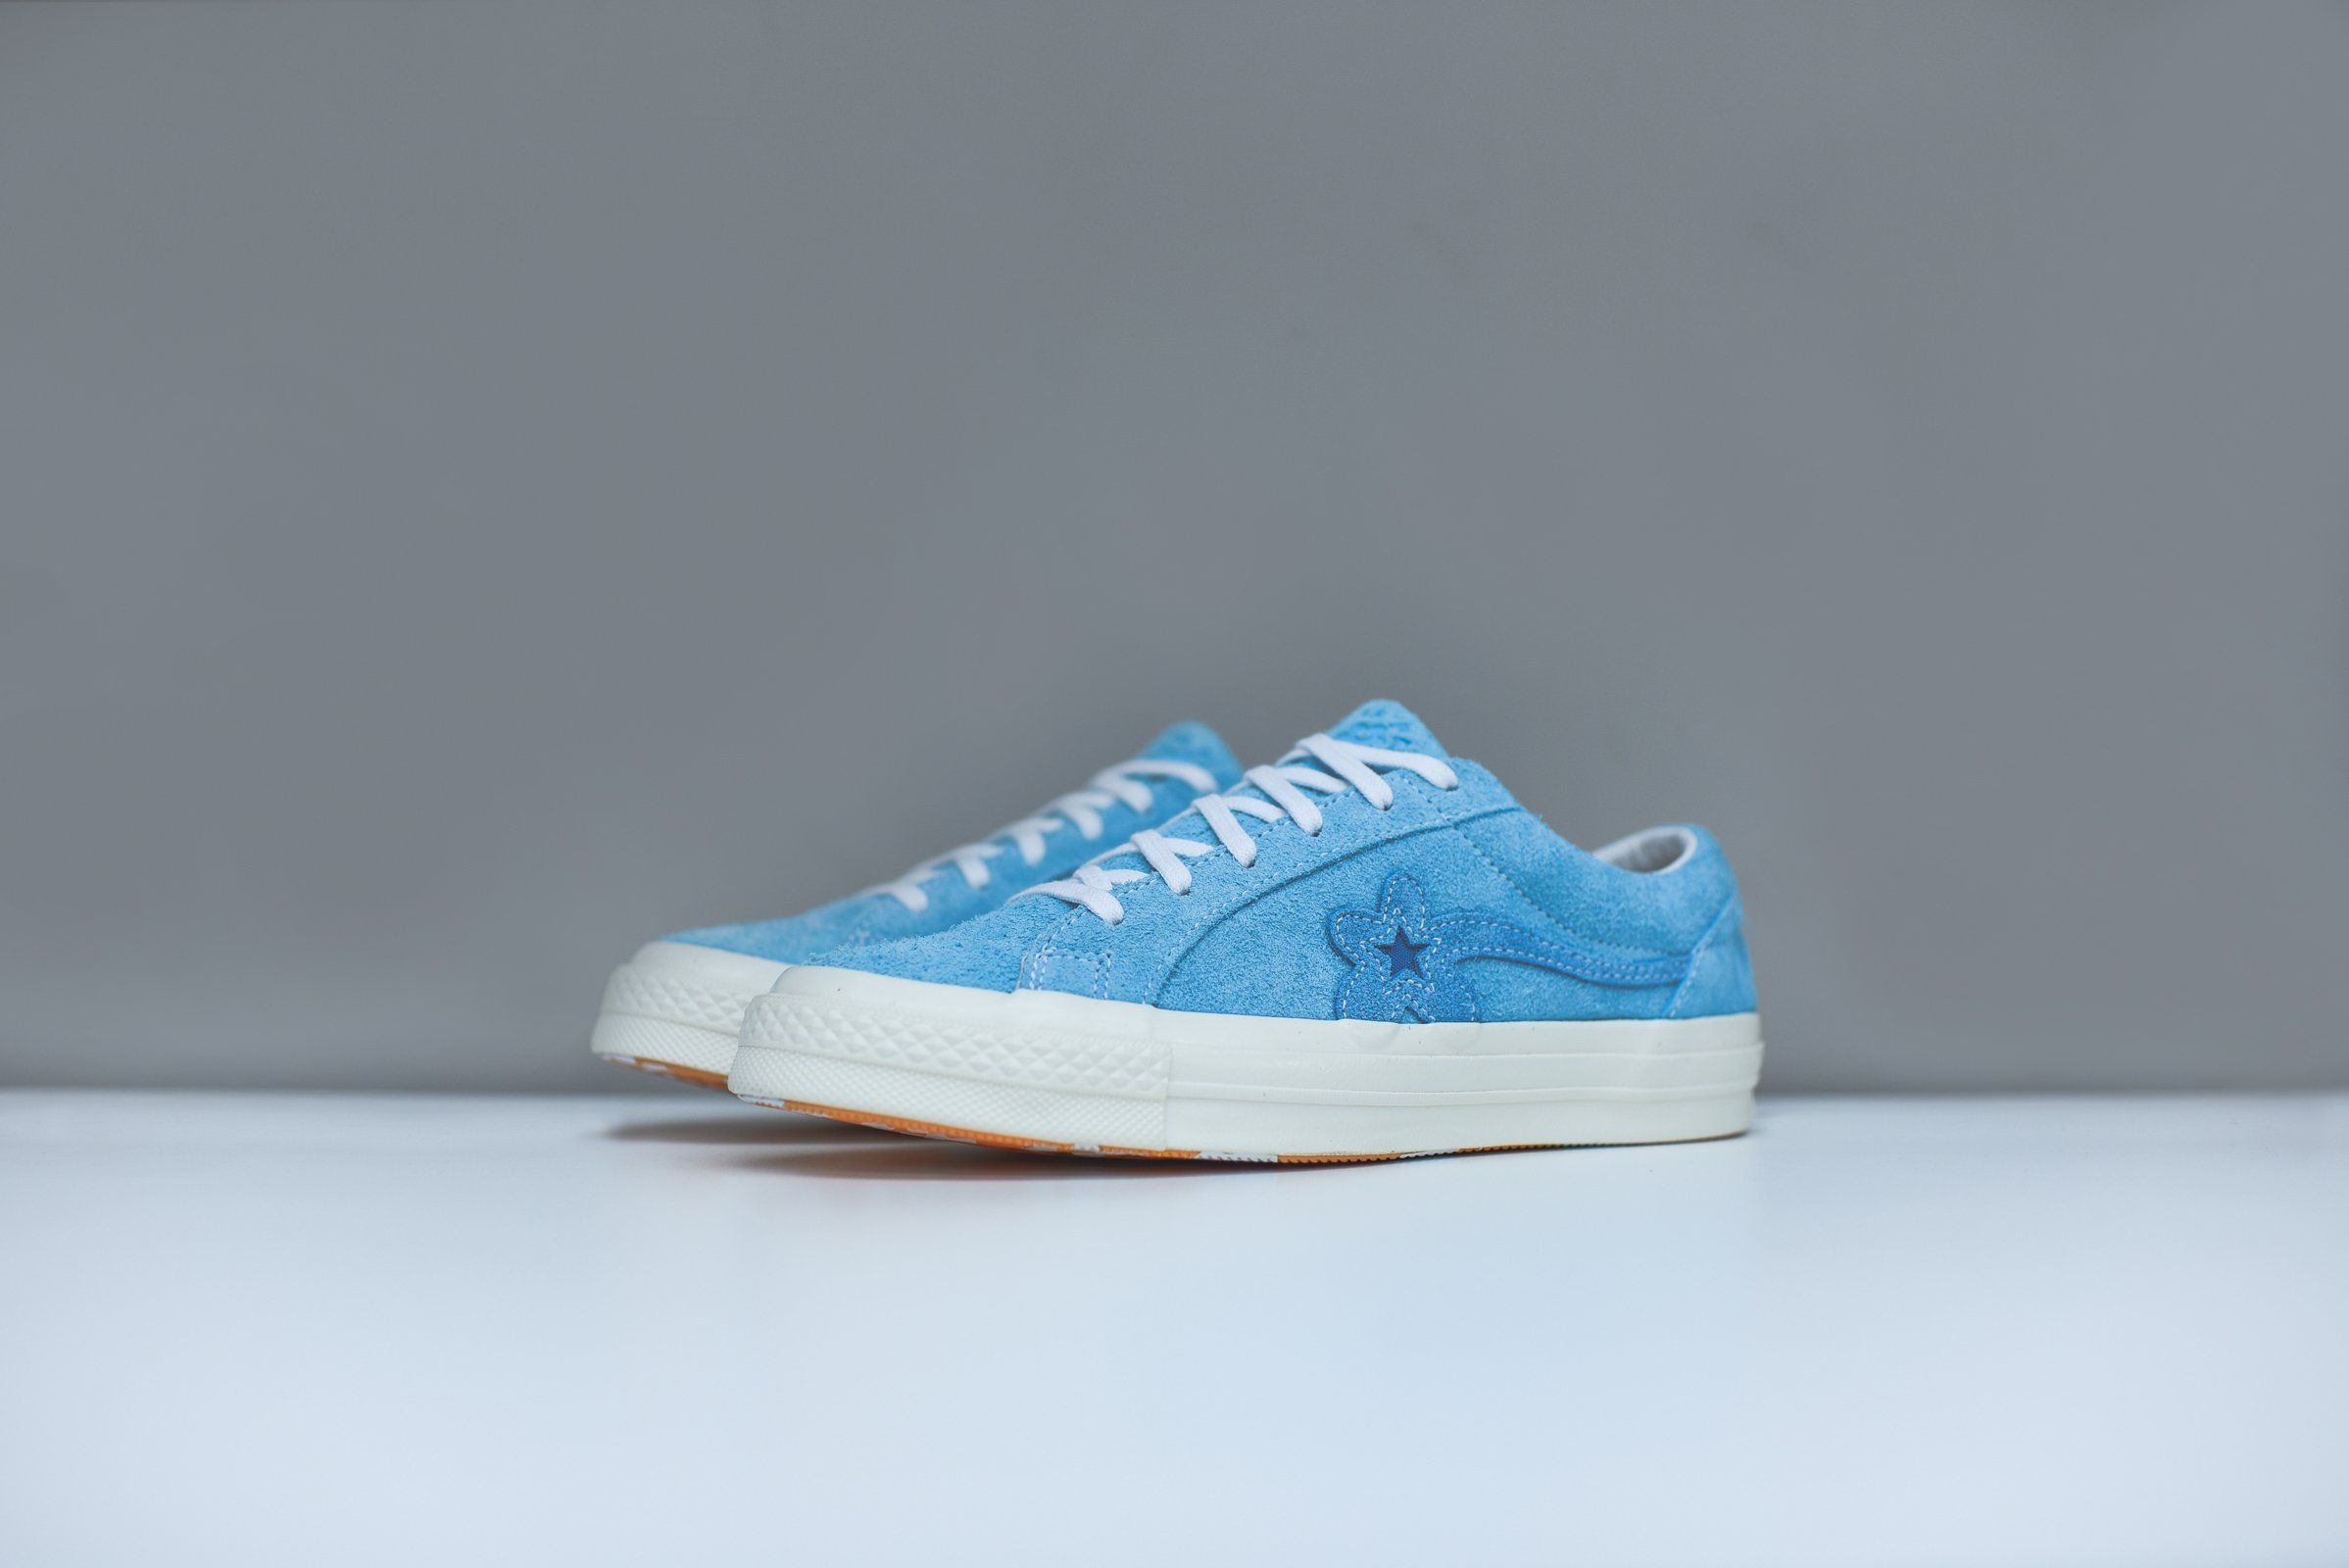 19516064d6d Converse x Golf Le Fleur One Star - Bachelor Blue   White